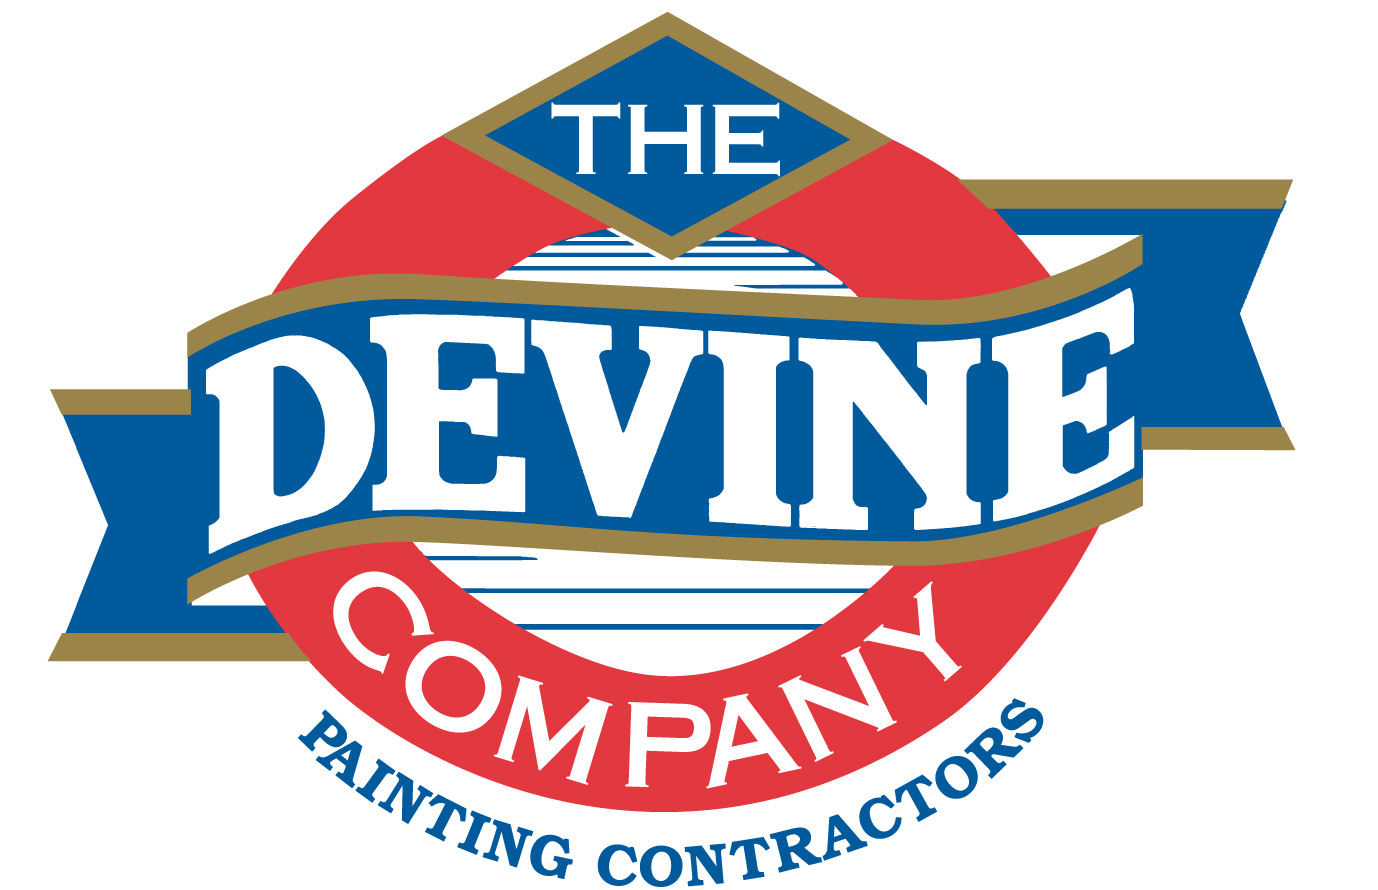 Devine Co Painting